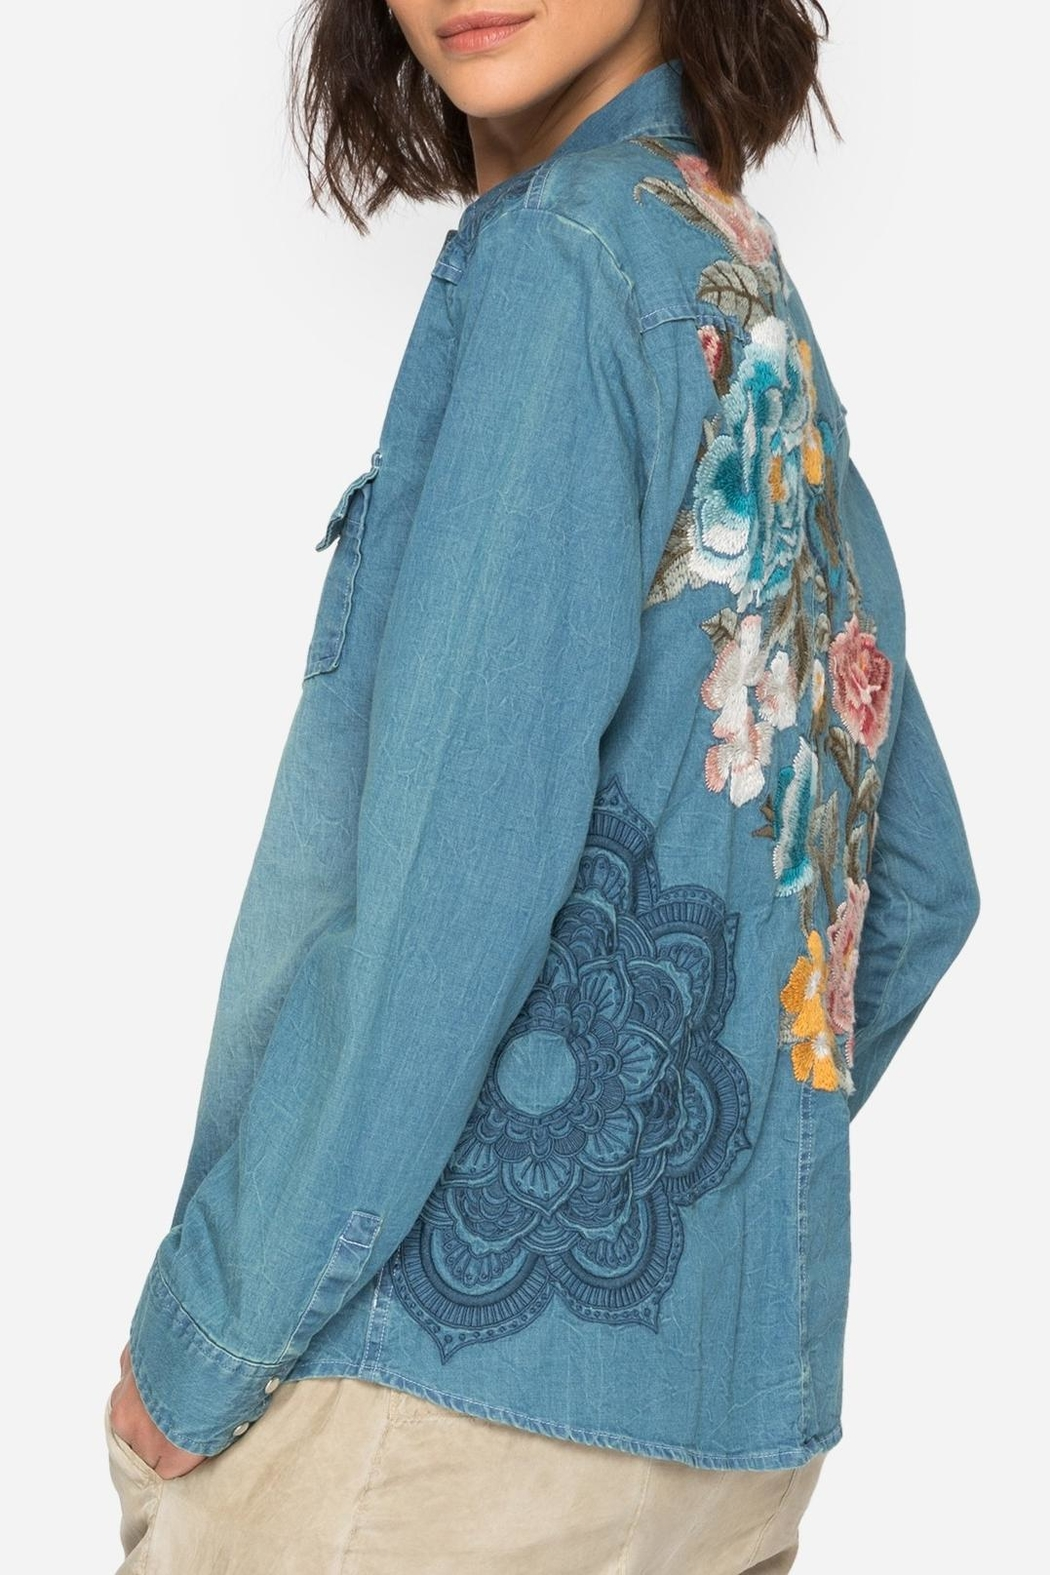 Johnny Was Denim Embroidered Shirt - Main Image